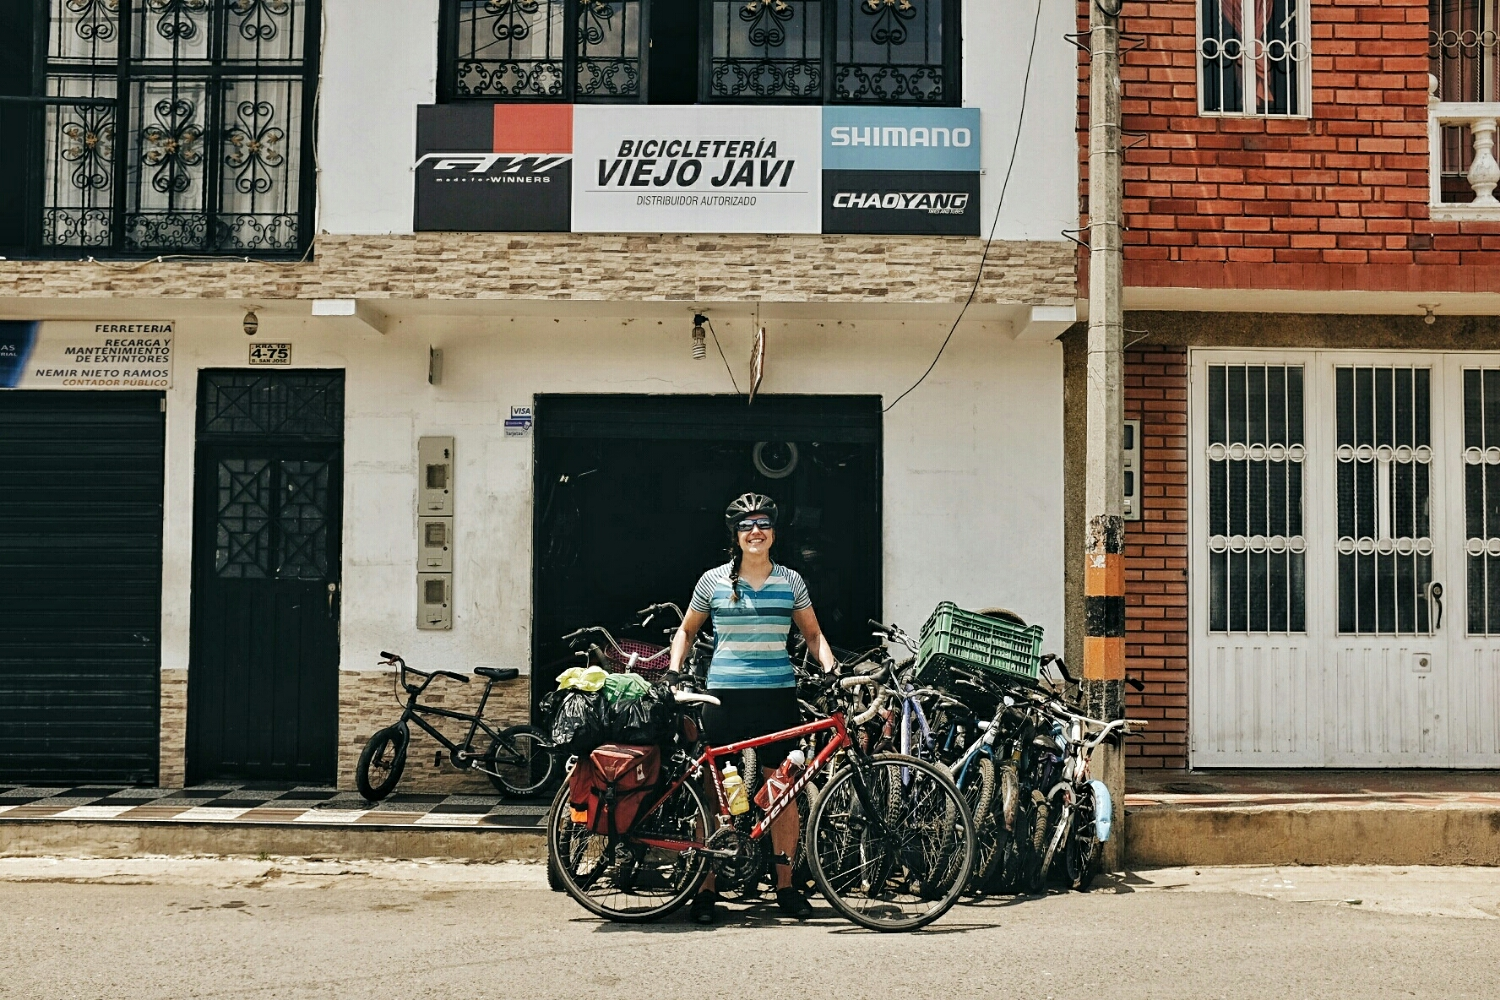 We met a fellow cyclists, Canadian Christina. She had problems with the threading on the crank arm, so we took her to Old Javi, who turned out to be young. Have a nice trip, Christina! Remember patience will compensate for lack of language skills.